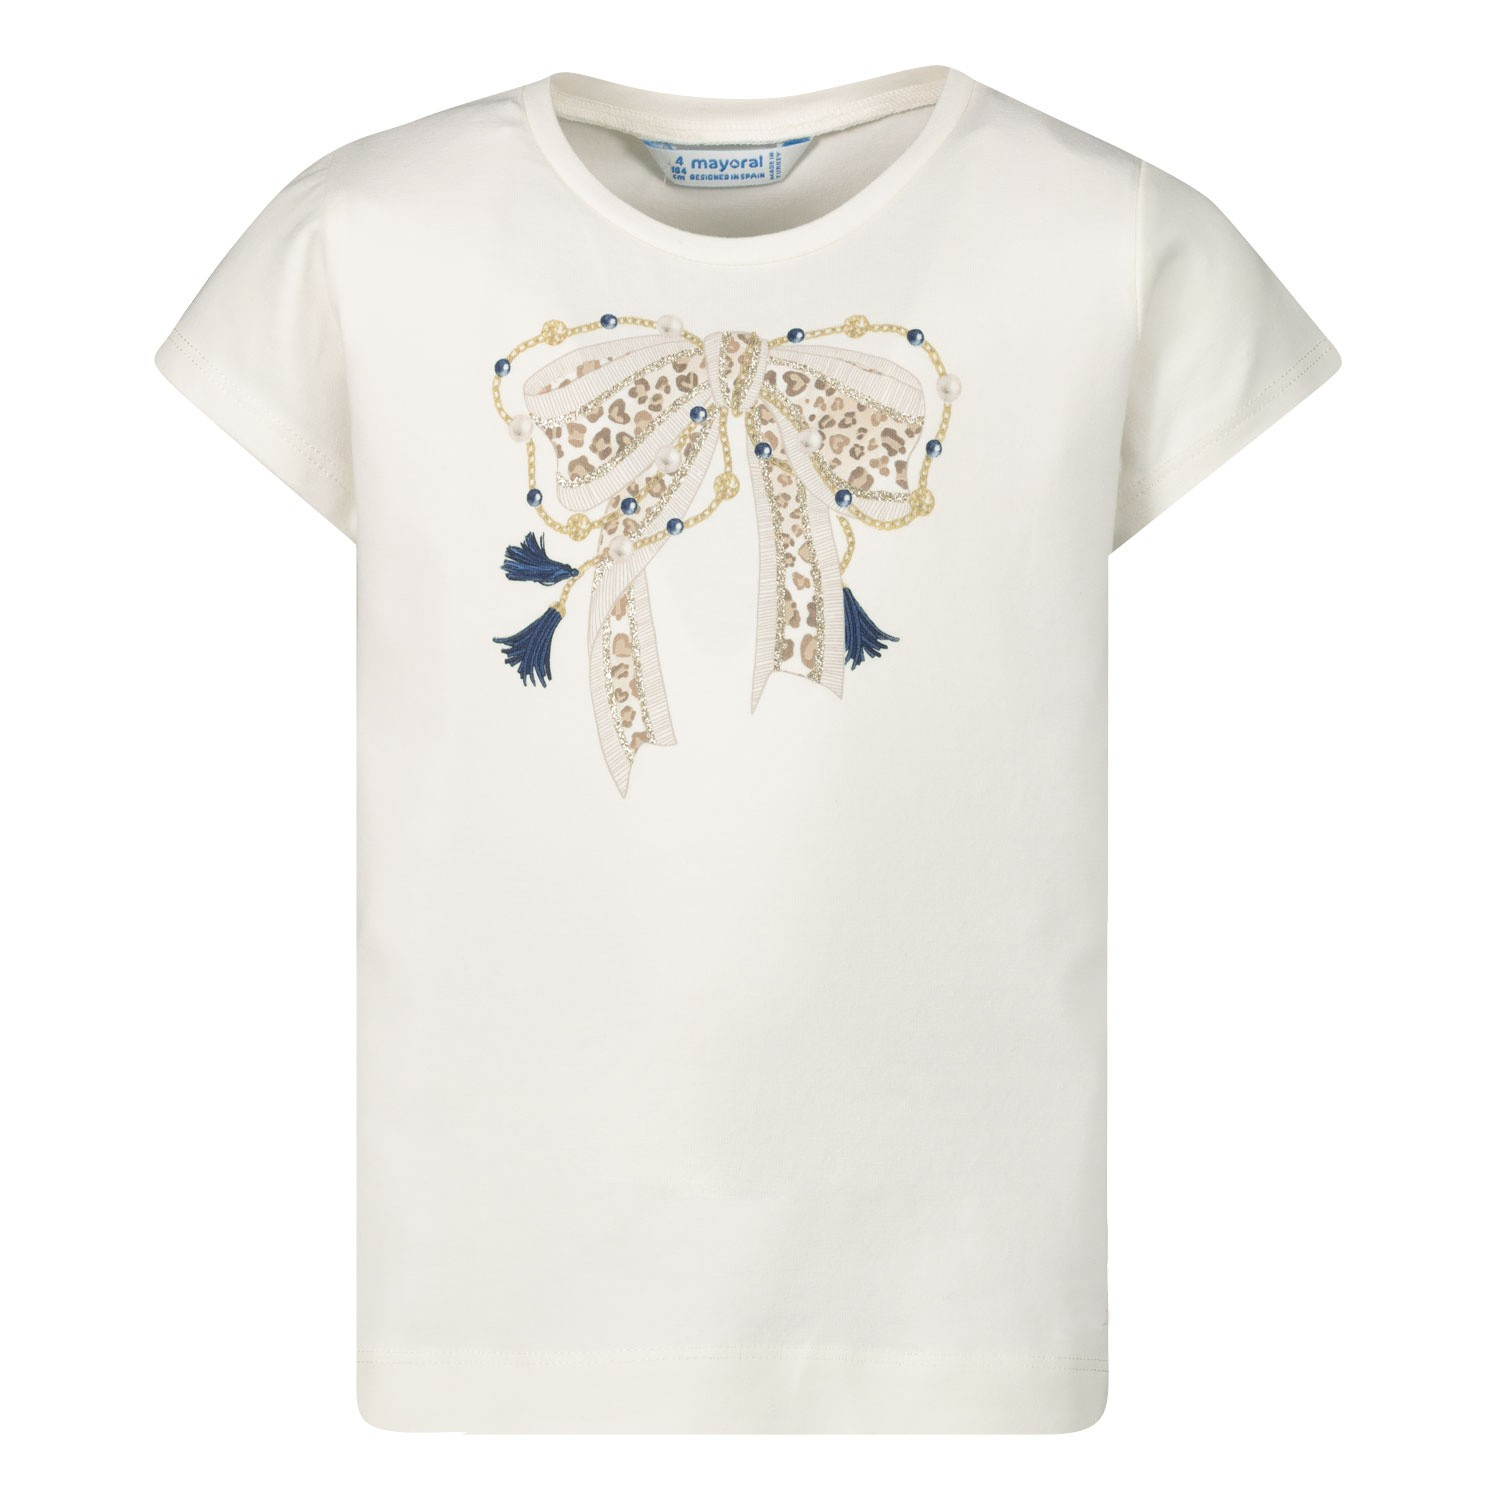 Afbeelding van Mayoral 3007 kinder t-shirt off white